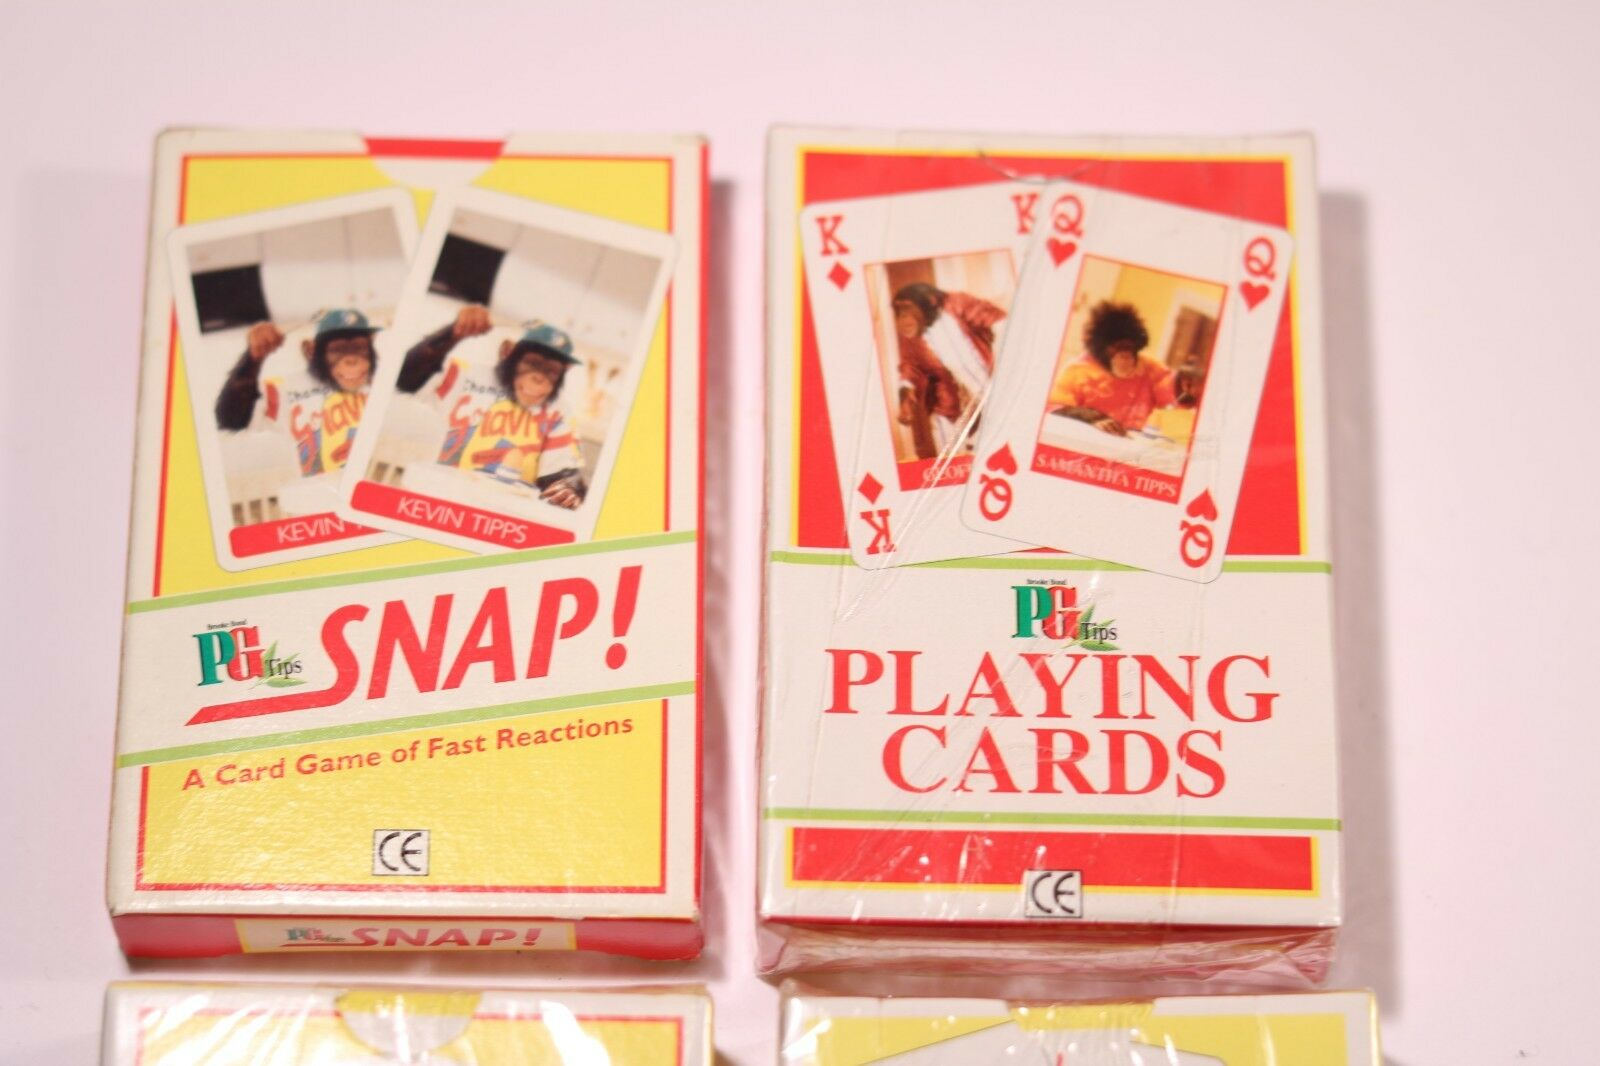 PG TIPS JOB LOT OF OF OF 4 PACK OF  CARDS TRICK SNAP GET OUT PLAYING CARDS cde832